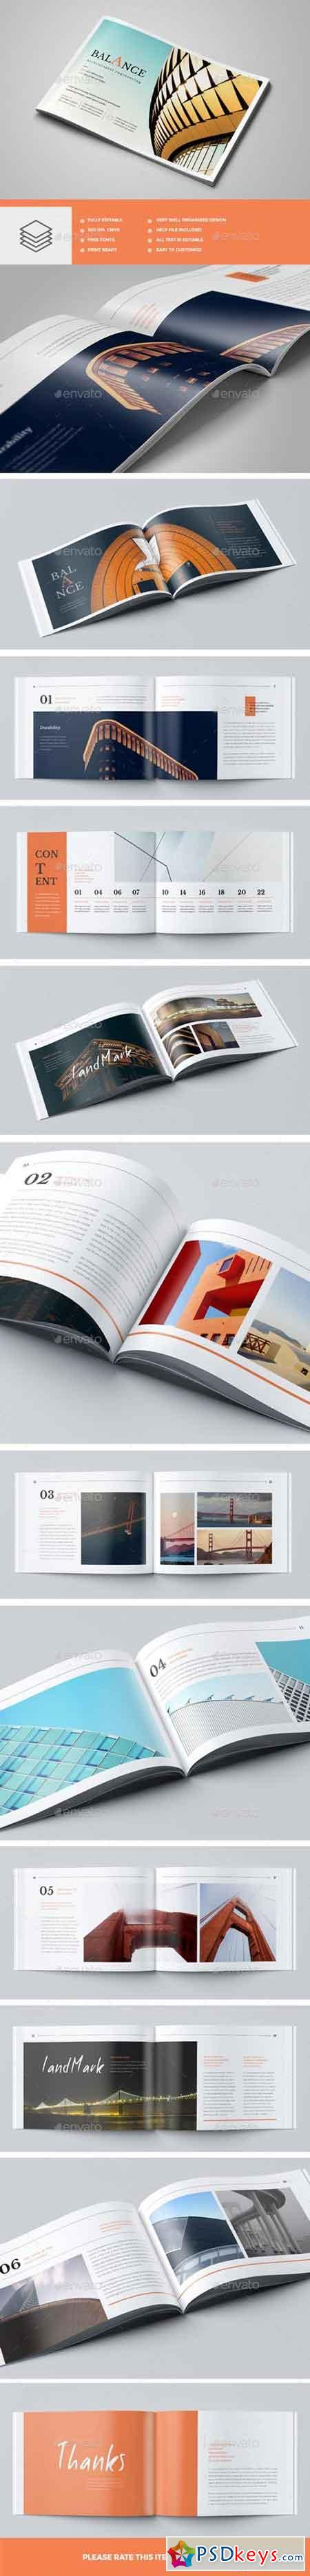 Modern Architecture Brochure 24 Pages A5 20447529